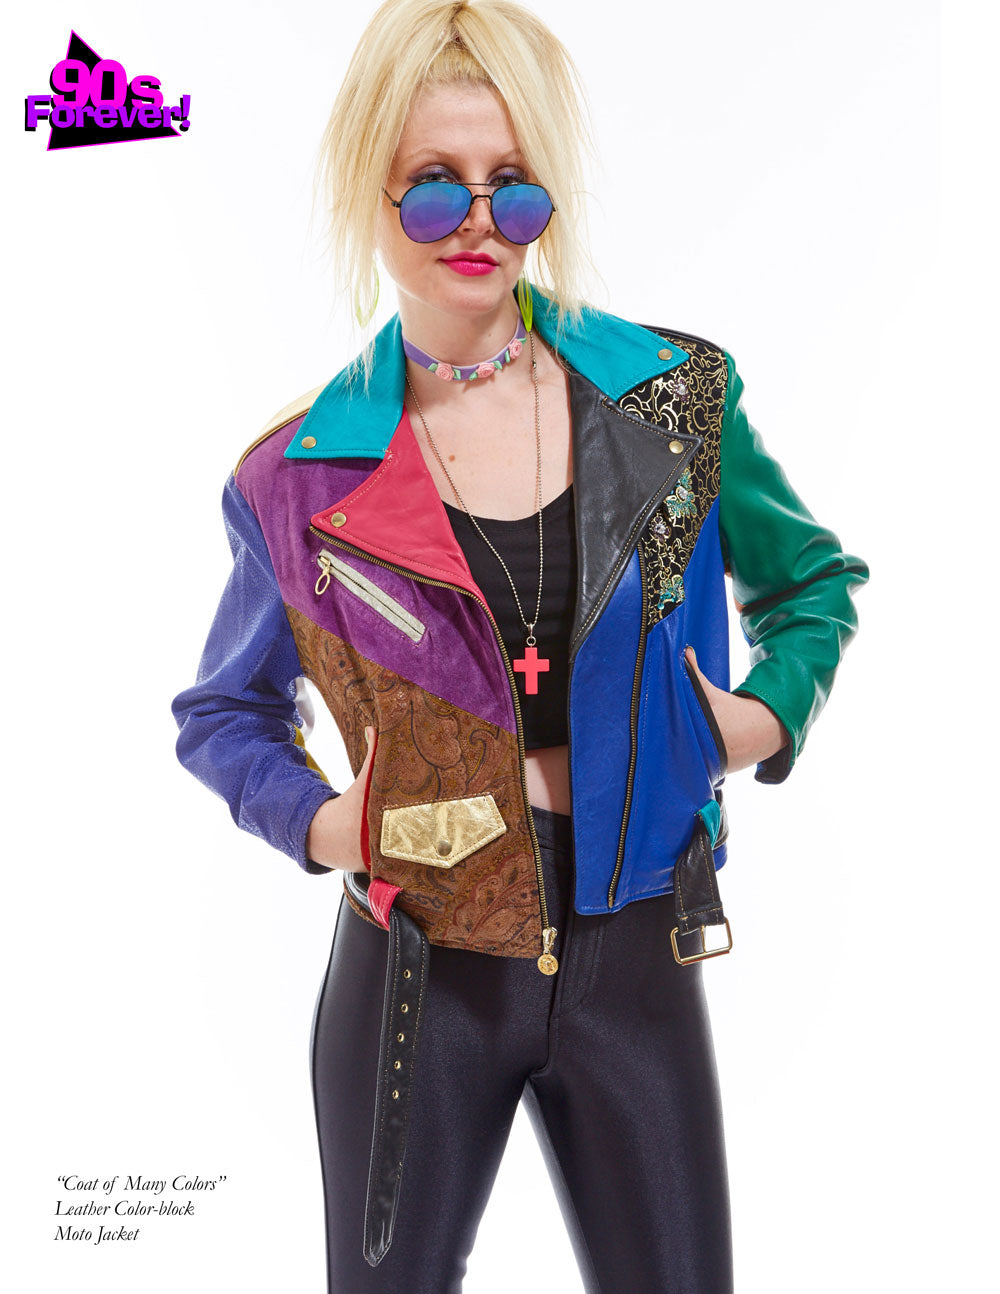 90s Forever Retro Vintage Fashion Apparel Lookbook - Leather colorblock moto jacket